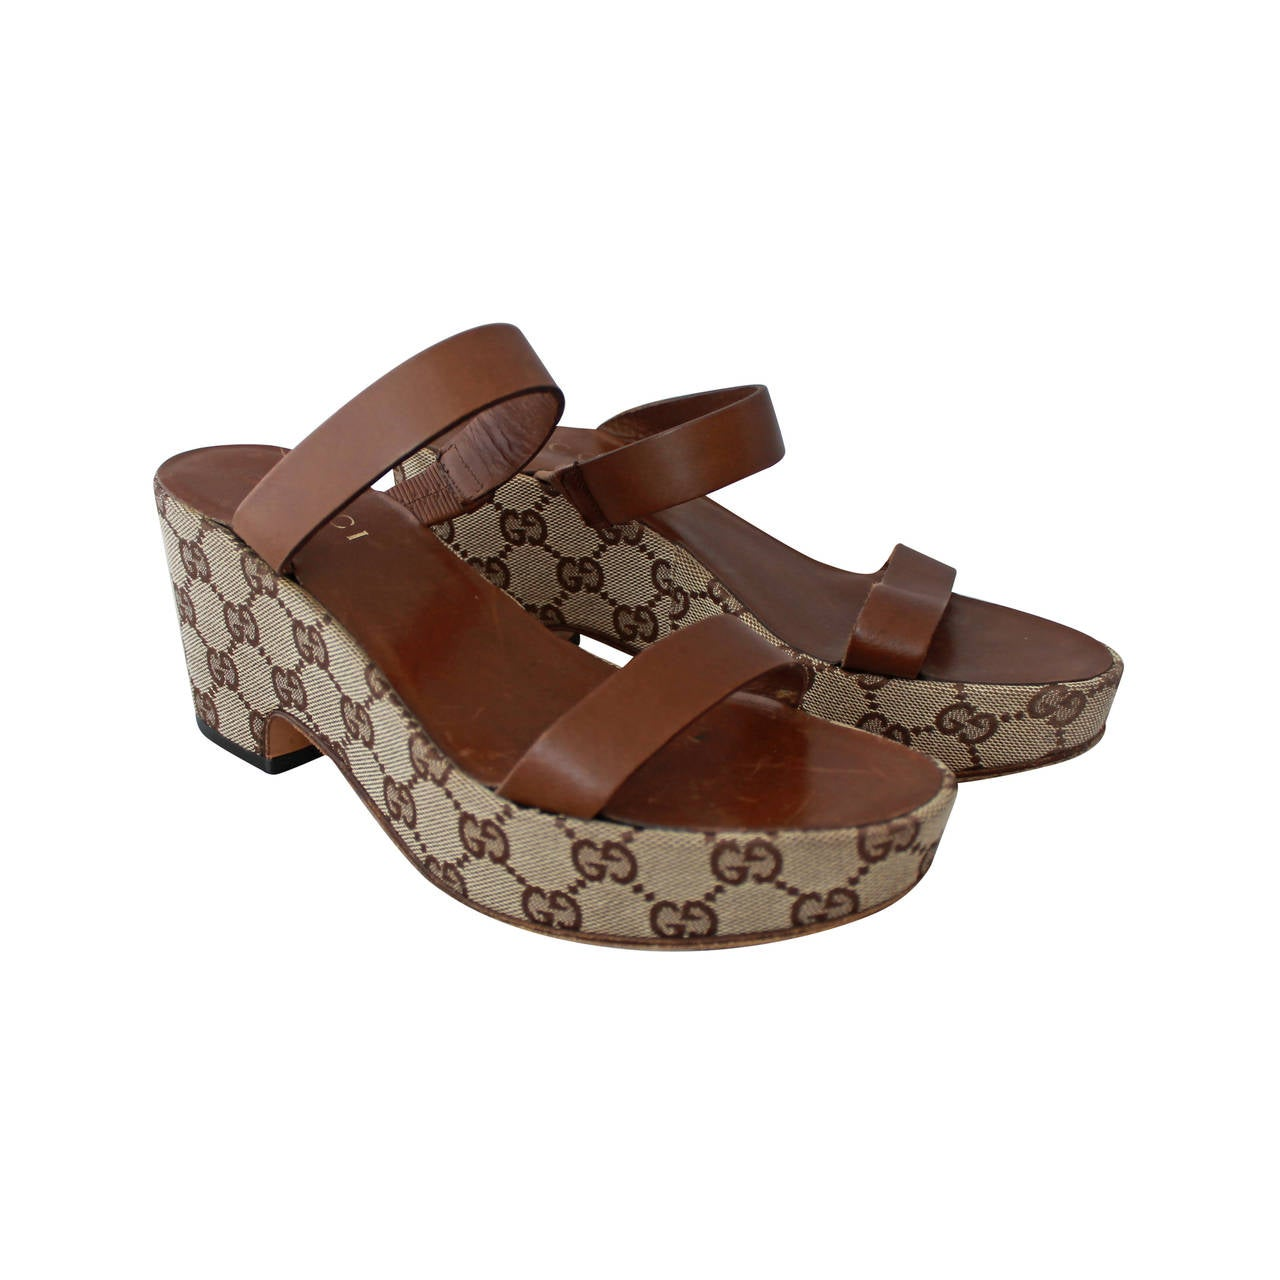 Gucci Brown Monogram Wedge Sandal - 6 For Sale